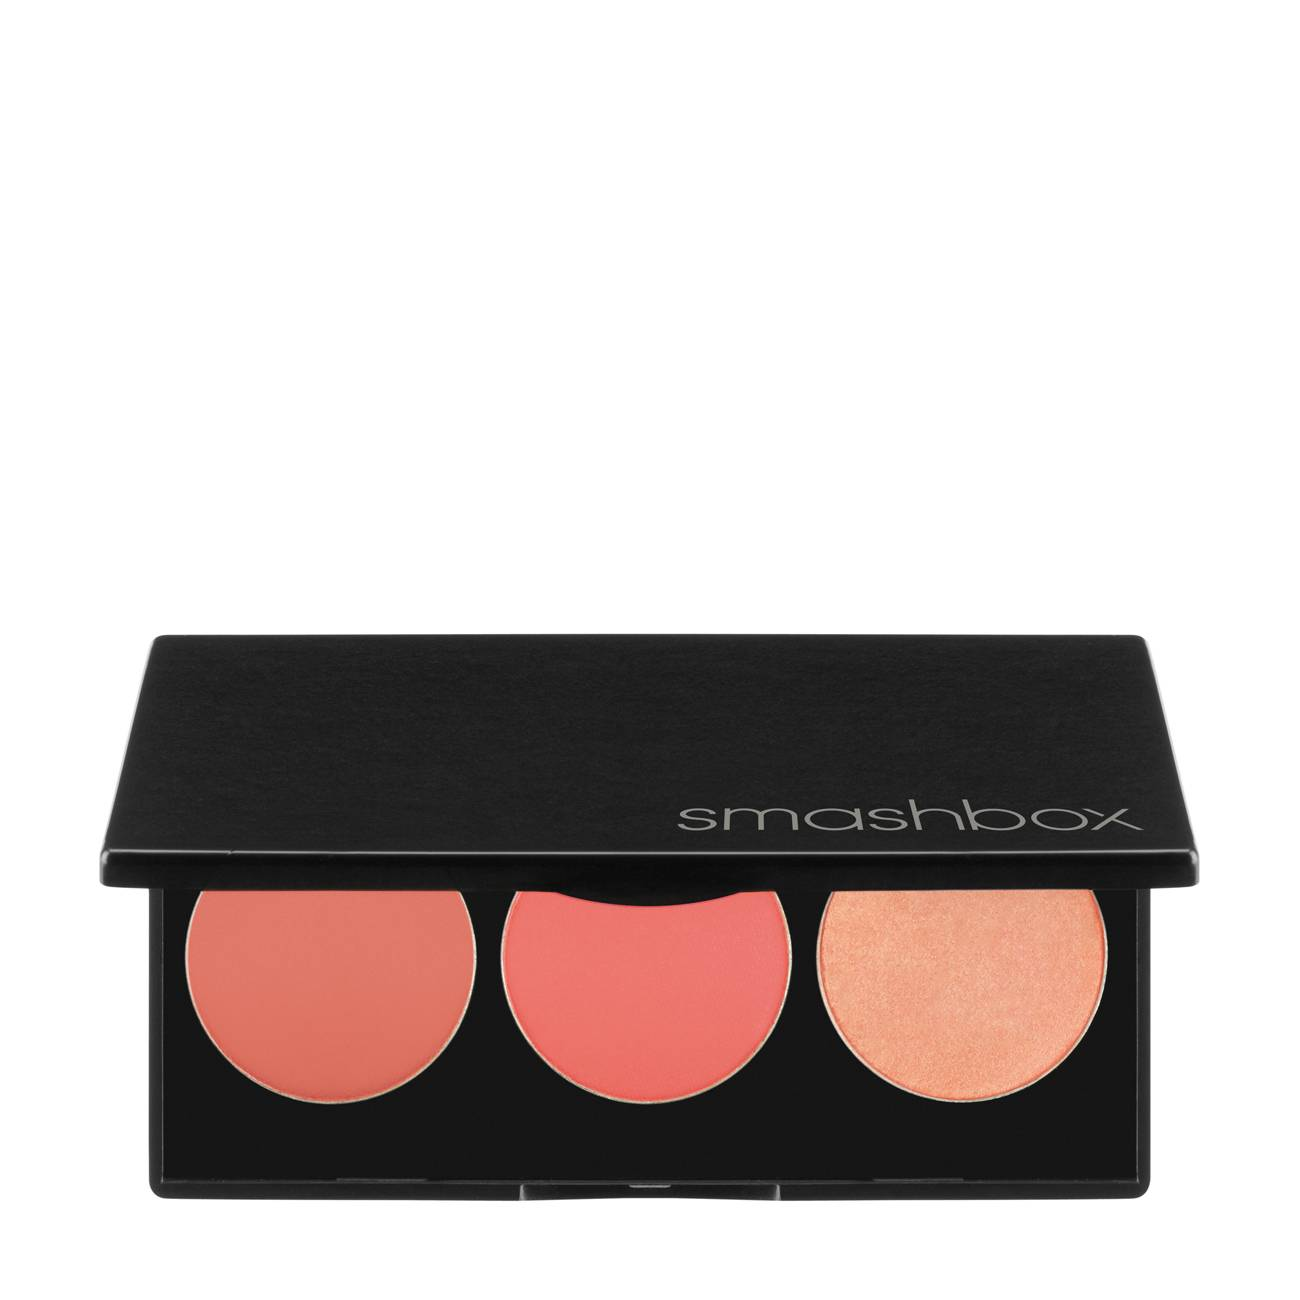 L.A Lights Blush And Highlights Palette 01 14 Grame